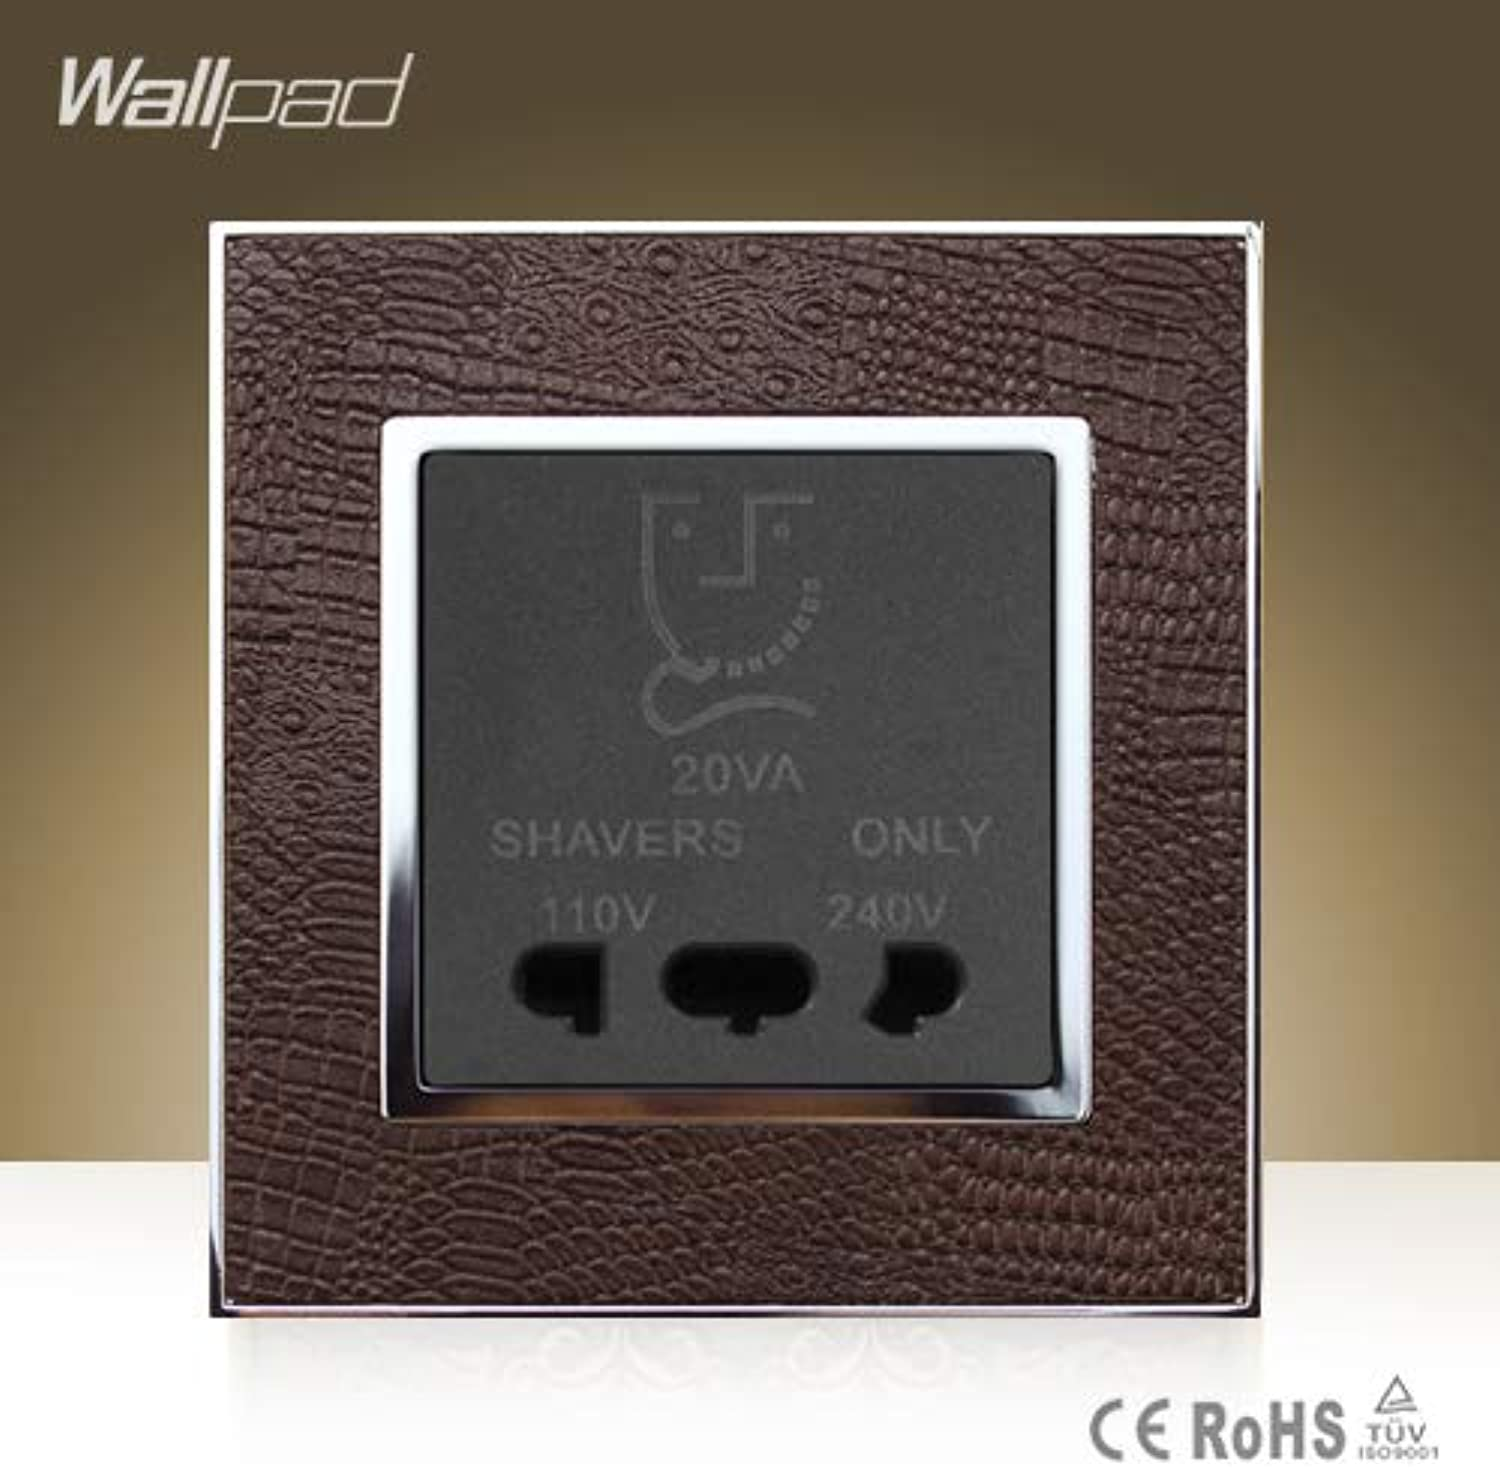 CE BS Approved Wallpad Hotel High Quality Shaver Socket Goats Brown Leather Beard Shaver Power Charger Socket